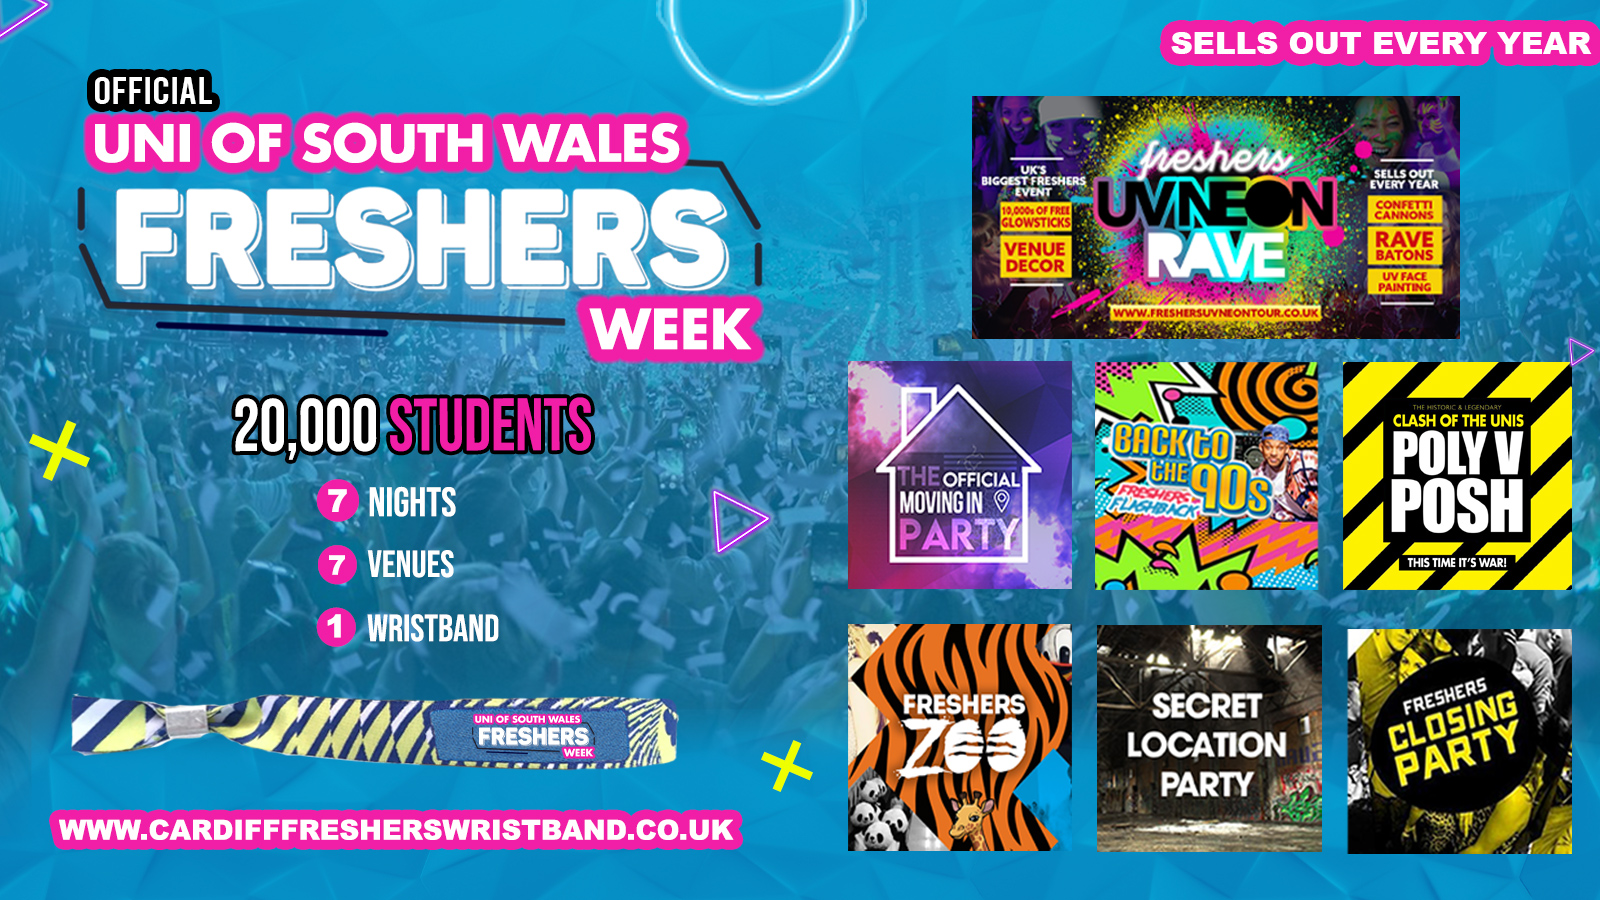 OFFICIAL University of South Wales Freshers Week Wristband 2021 – Cardiff Freshers 2021